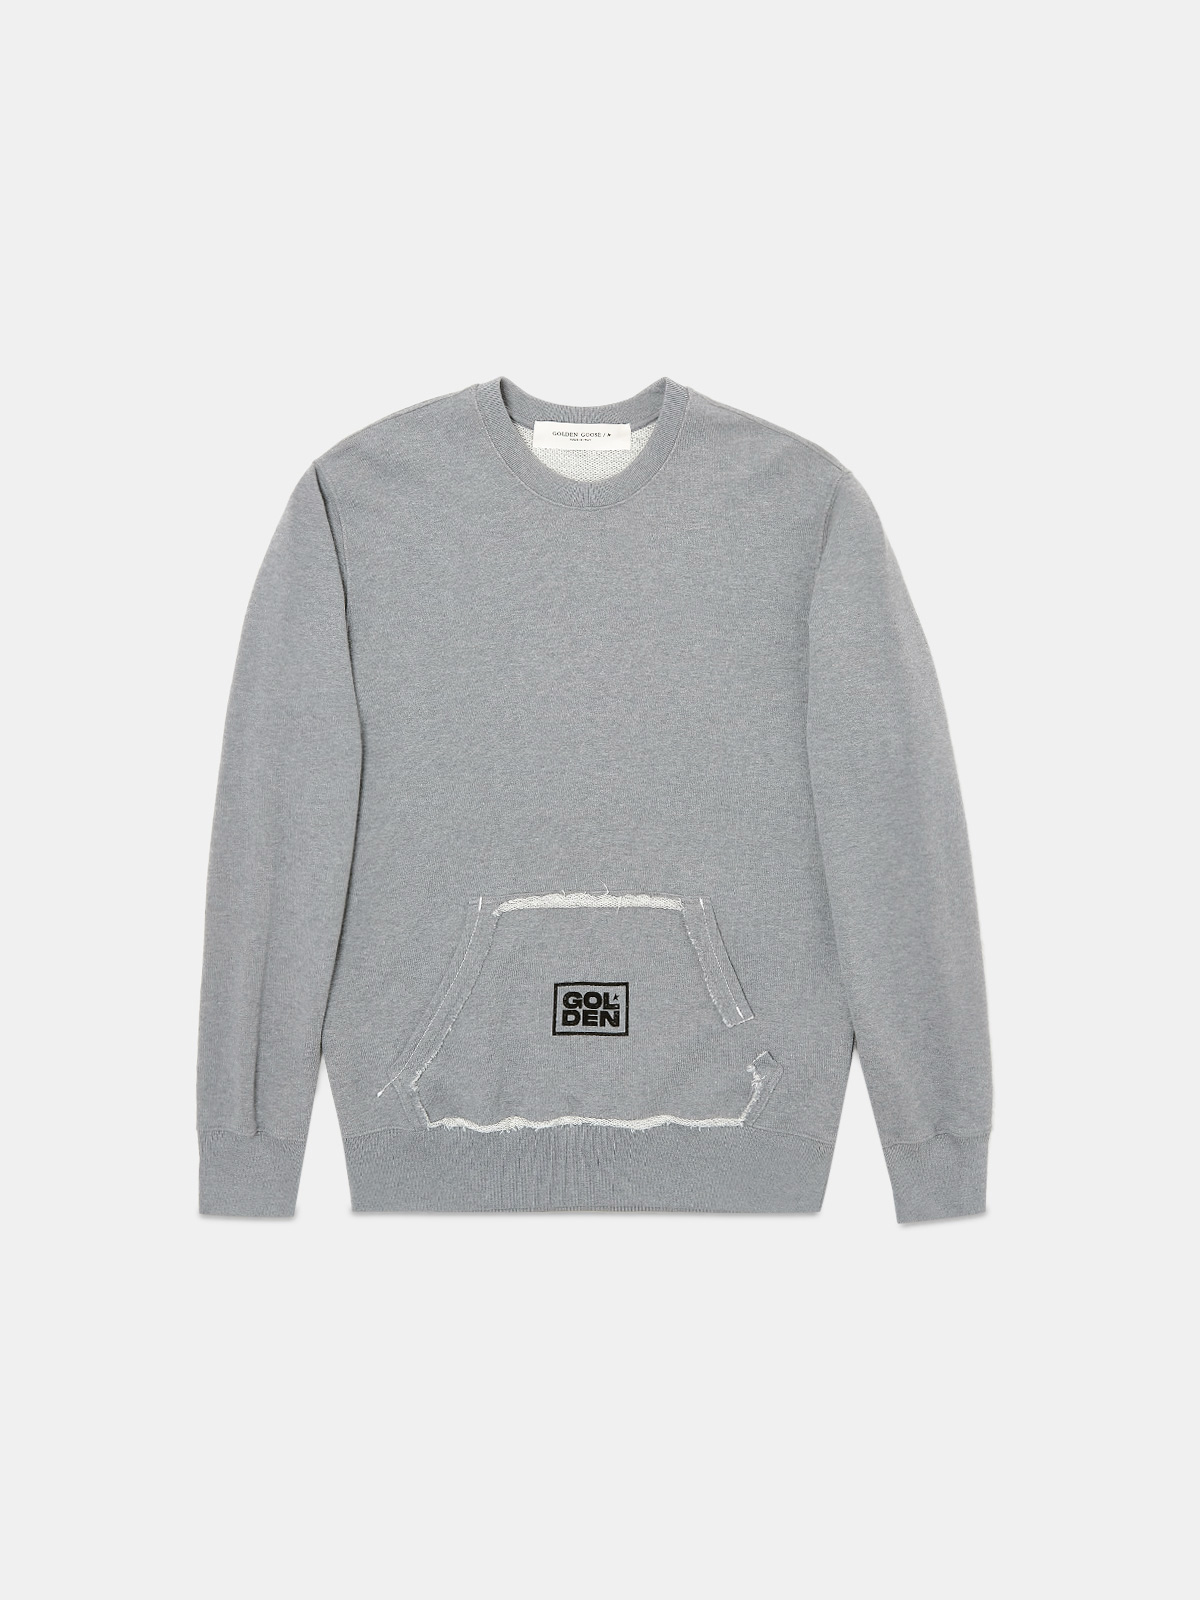 Golden Goose - Grey Archibald sweatshirt with kangaroo pocket on the front in